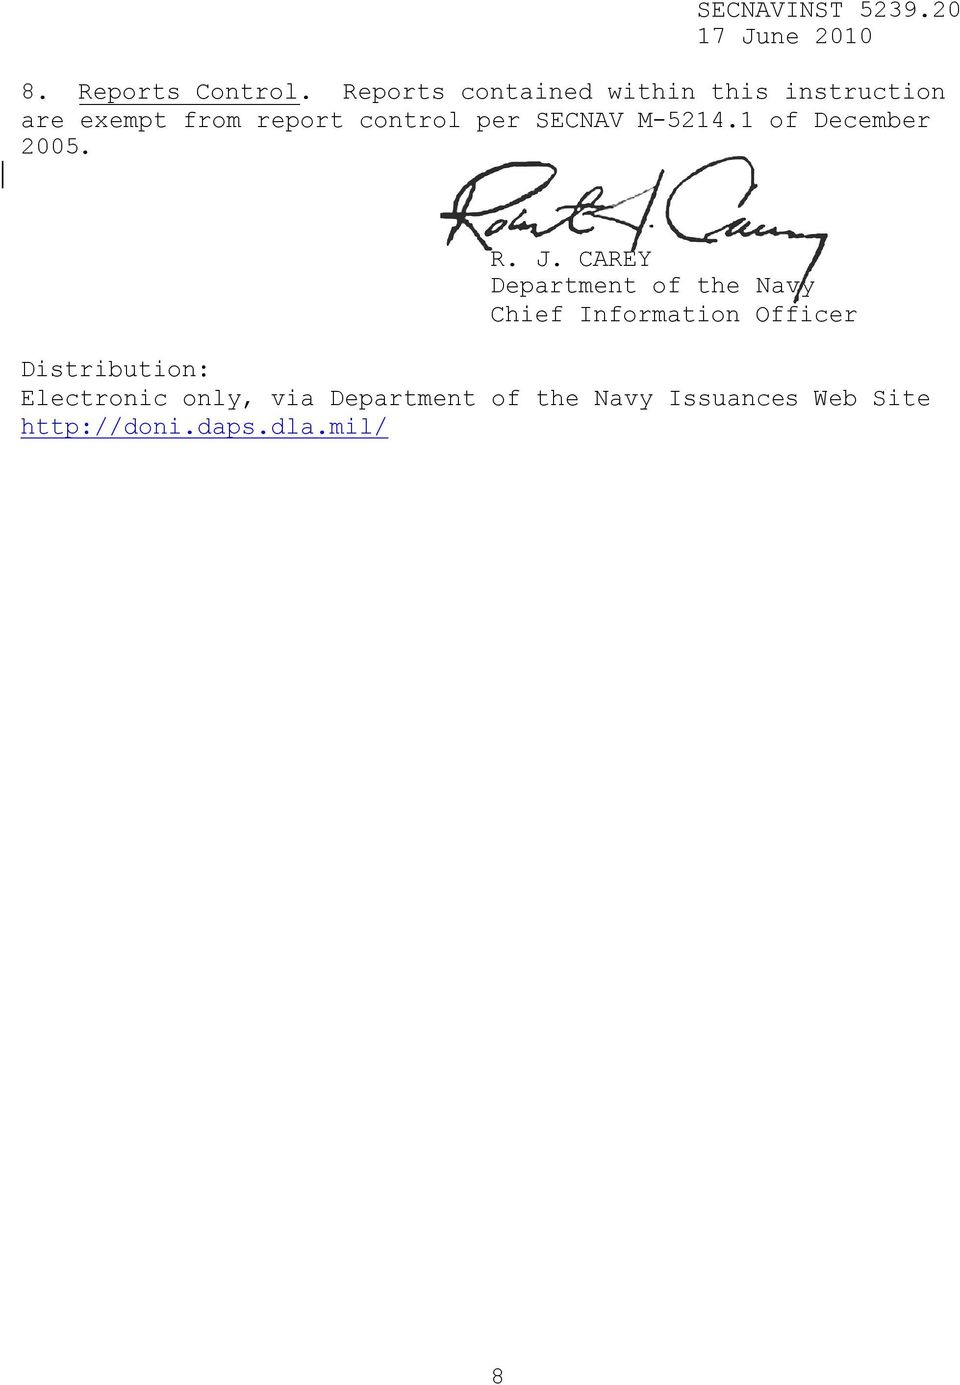 per SECNAV M-5214.1 of December 2005. R. J.